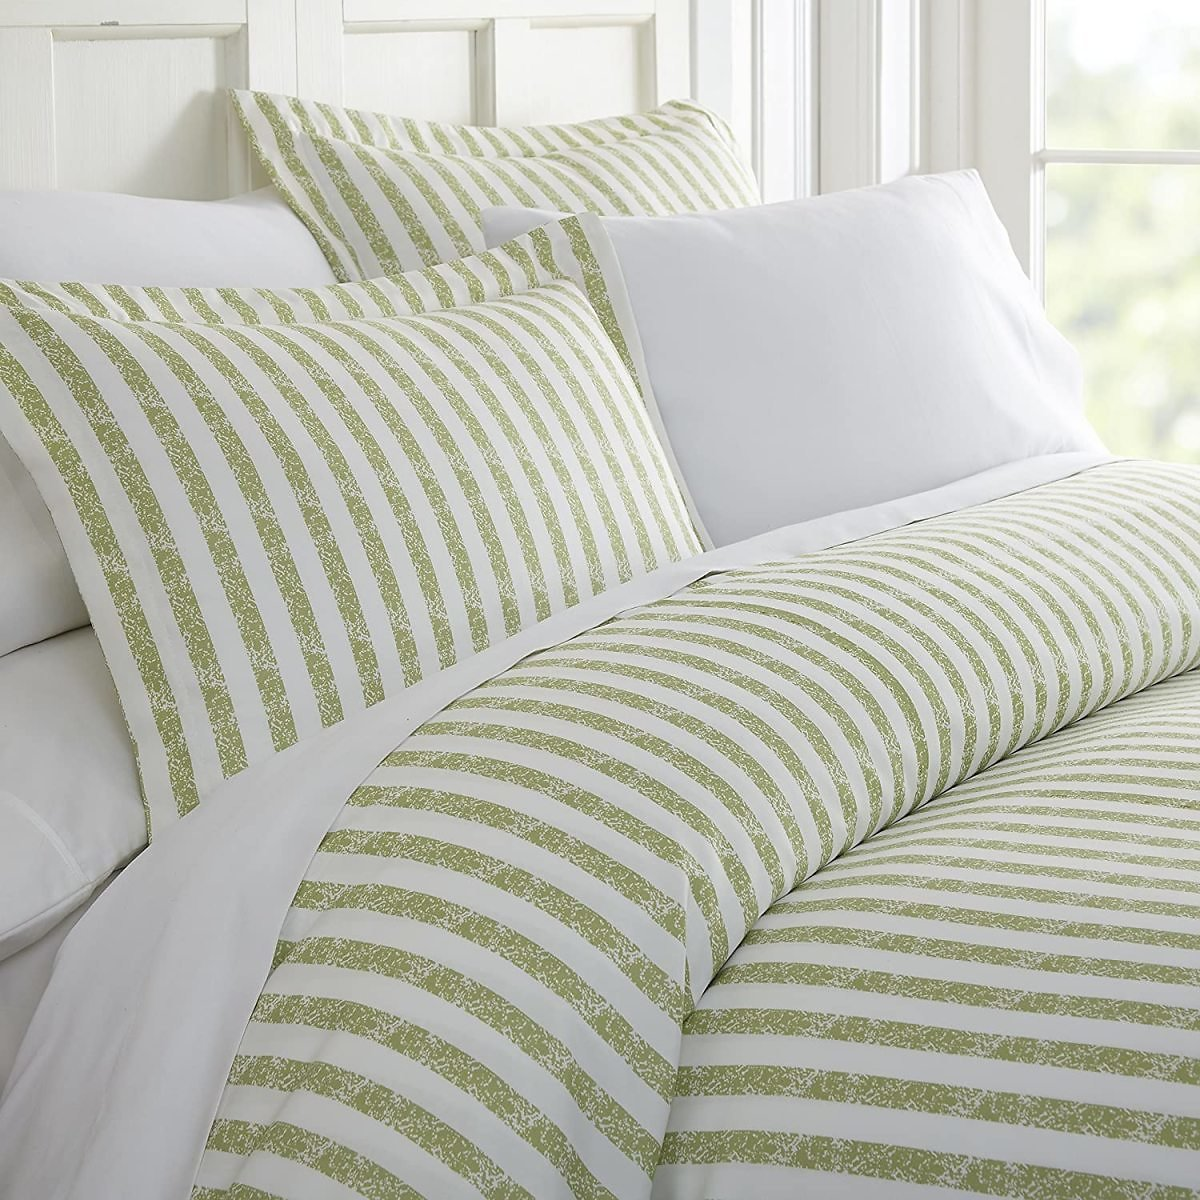 Ienjoy Home 3 Piece Rugged Stripes Patterned Home Collection Premium Ultra Soft Duvet Cover Set, Queen, Sage